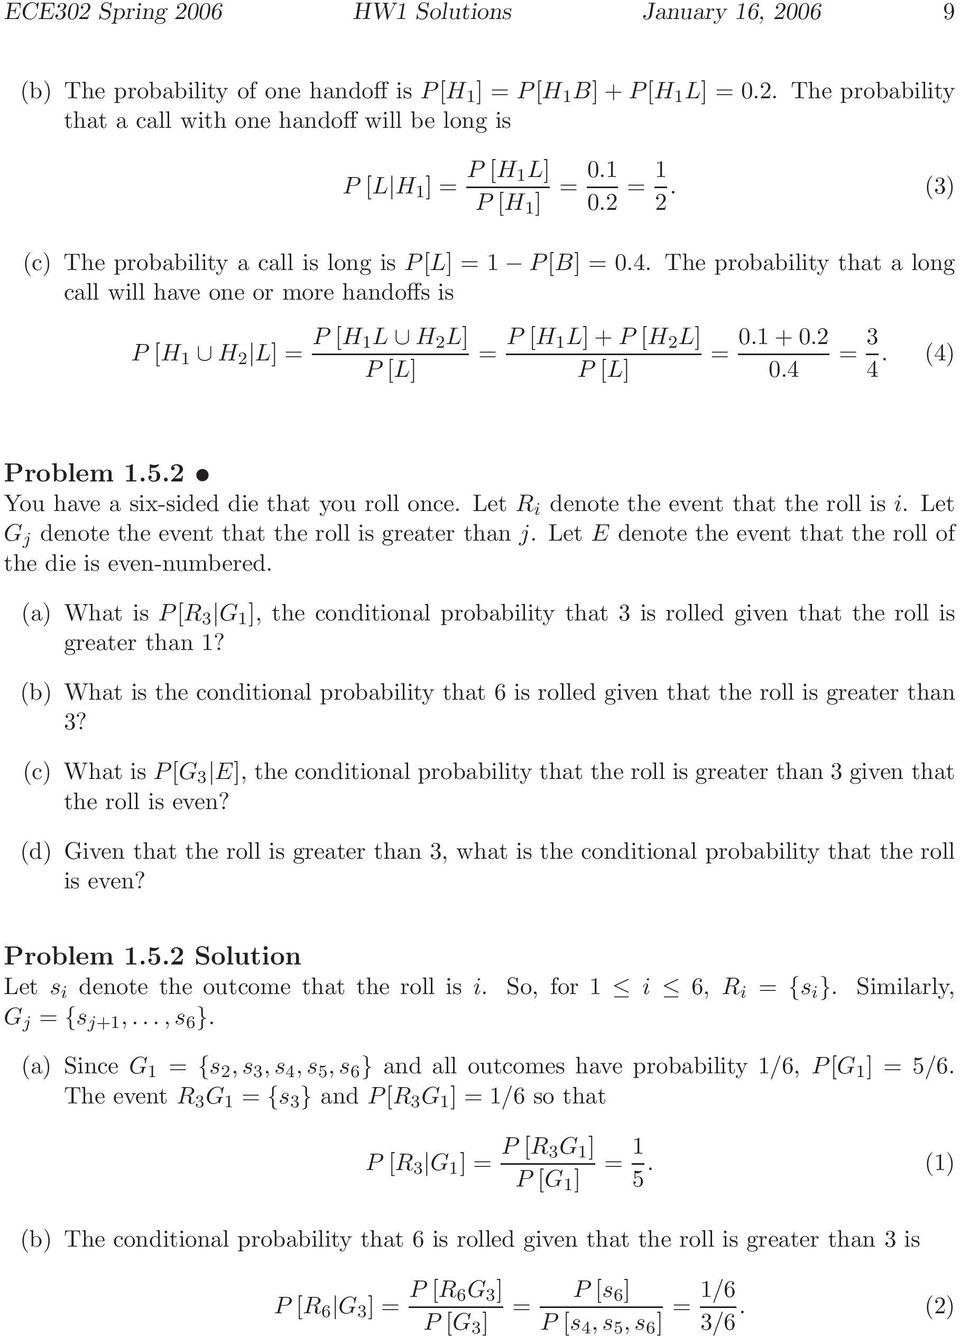 The probability that a long call will have one or more handoffs is P [H 1 H 2 L] = P [H 1L H 2 L] P [L] = P [H 1L] + P [H 2 L] P [L] = 0.1 + 0.2 0.4 = 3 4. (4) Problem 1.5.